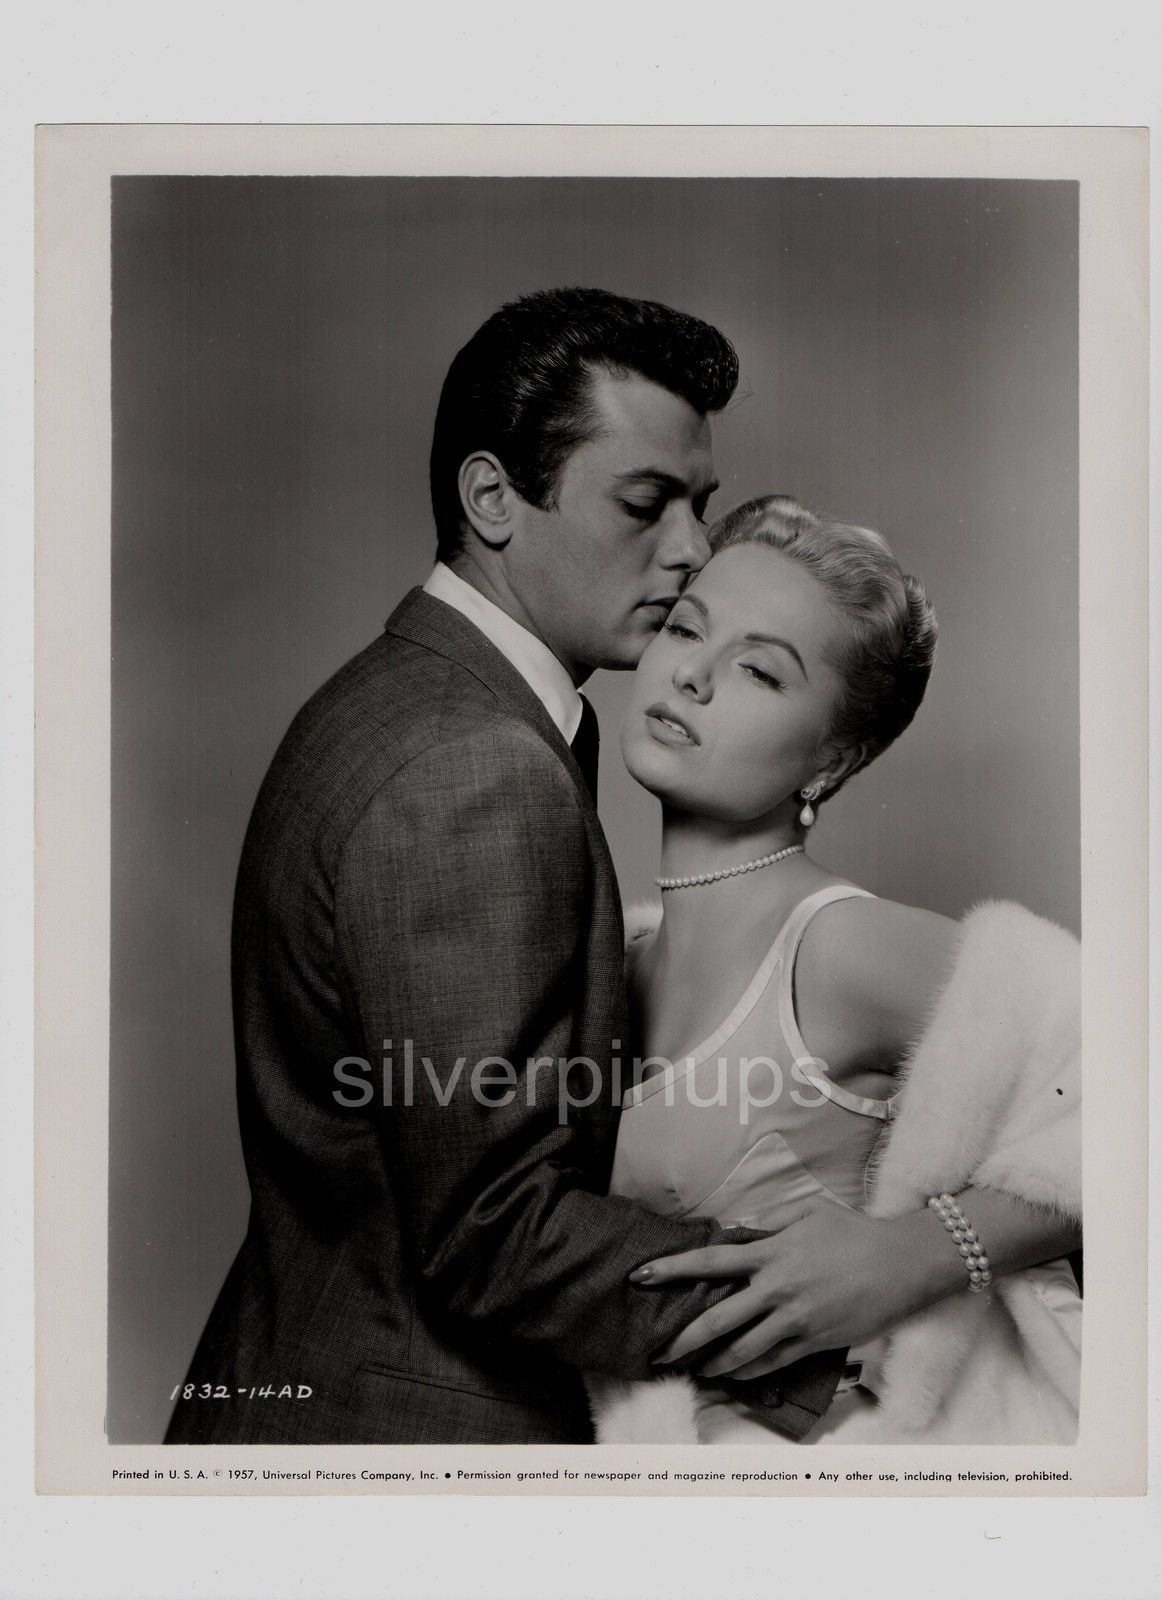 Orig 1957 Tony Curtis Martha Hyer Sexy Passionate Mister Cory Portrait Silverpinups